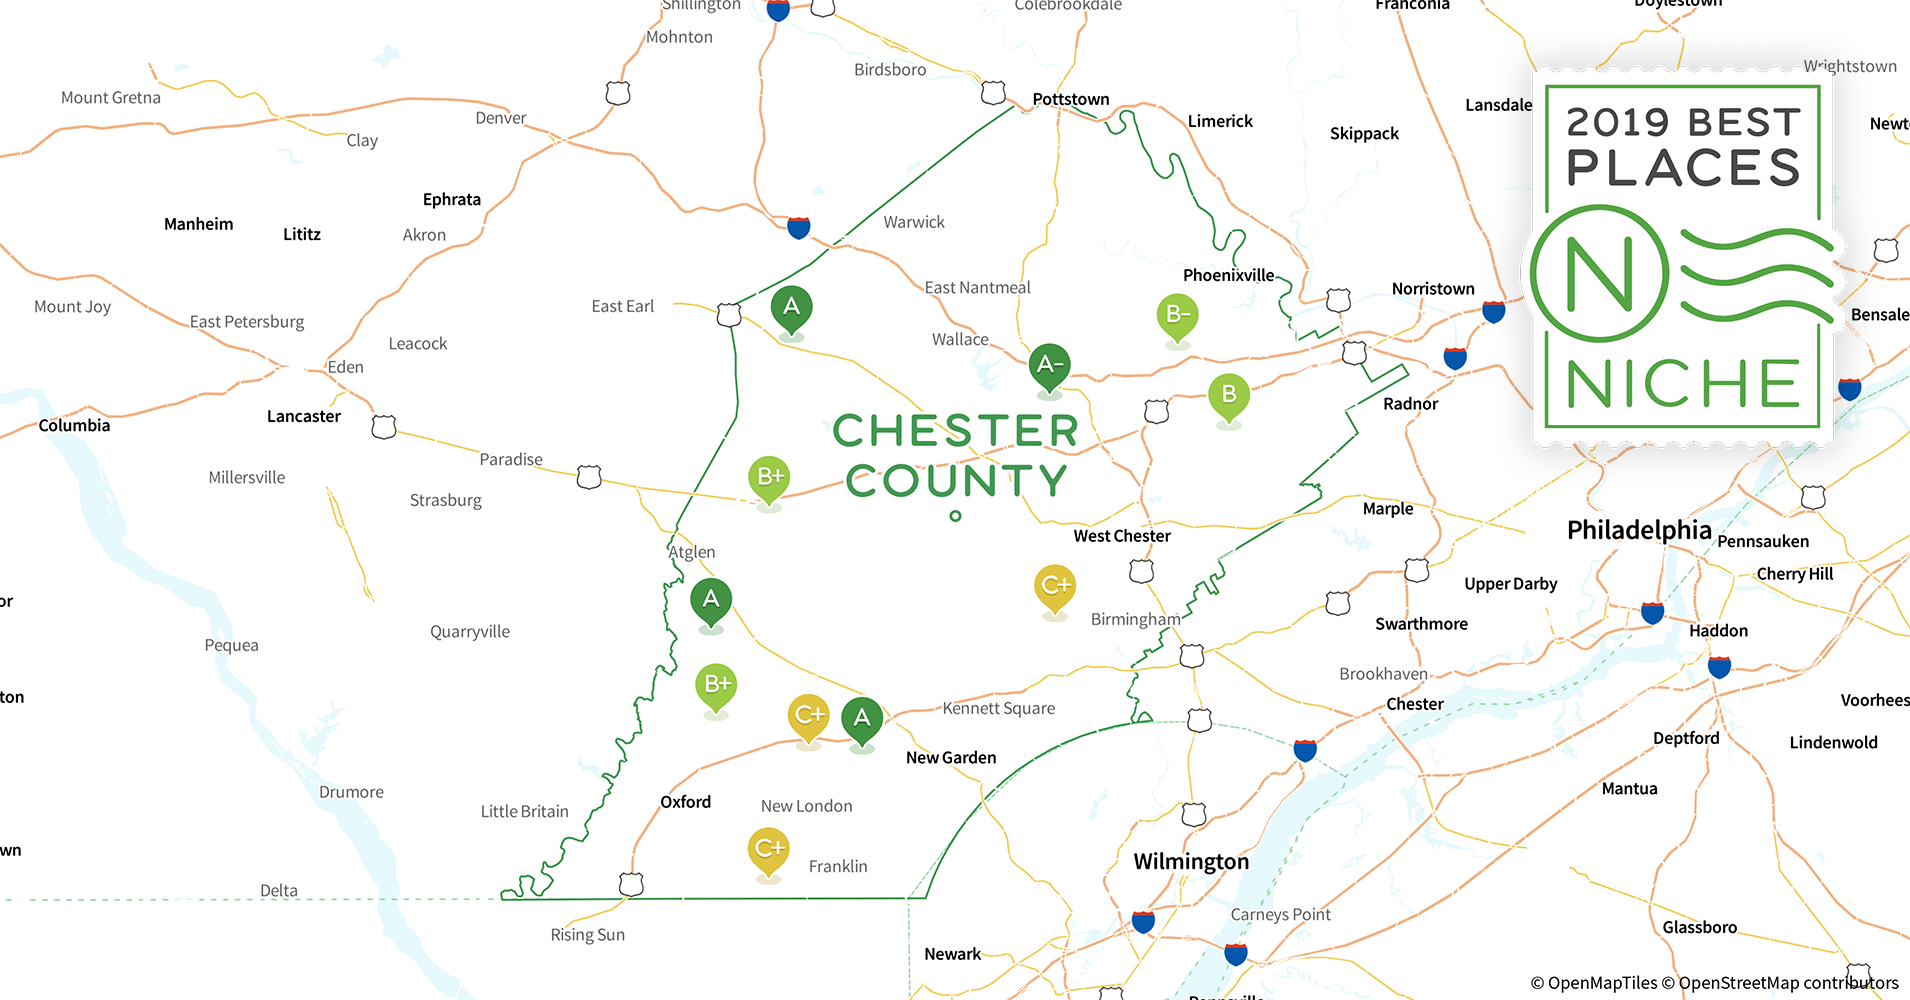 2019 Safe Places to Live in Chester County, PA - Niche Chester County Map on